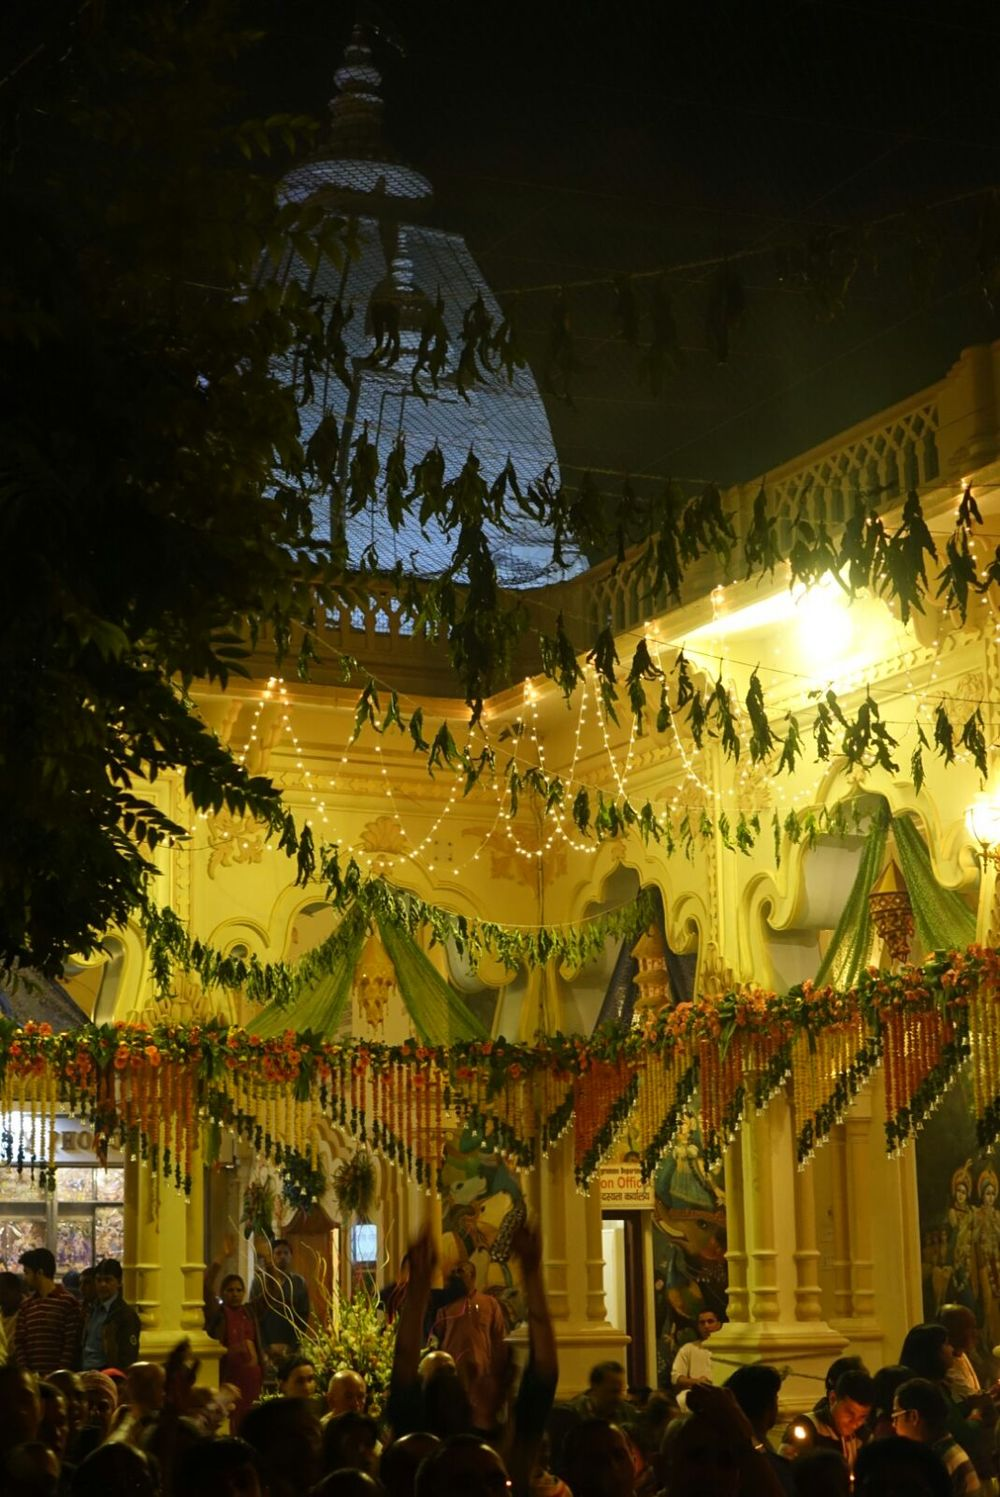 Decorations adorn a temple in Vrindavan to celebrate Kartik